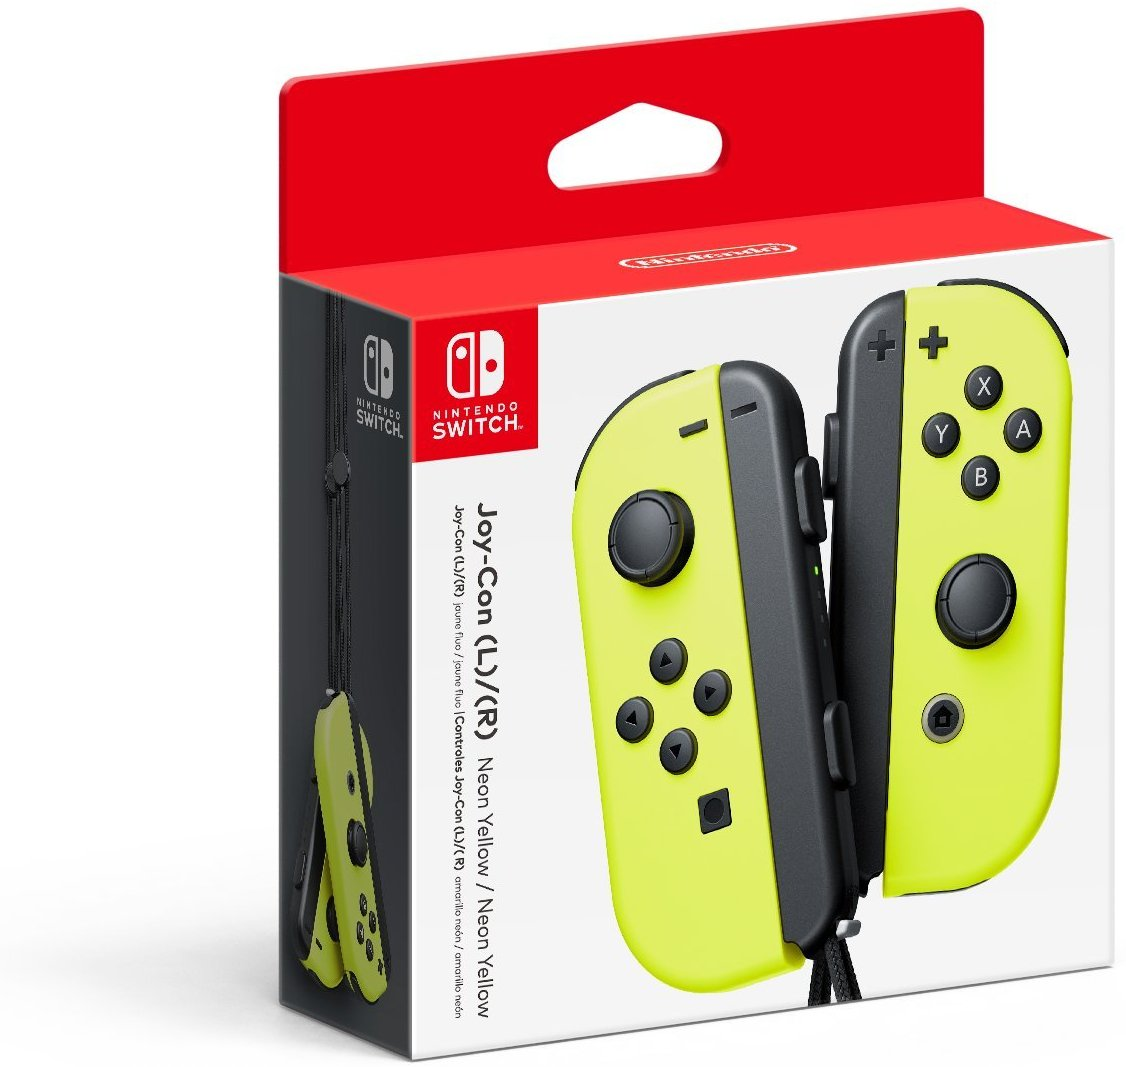 bo-2-tay-joy-con-controllers-neon-yellow-nintendo-switch